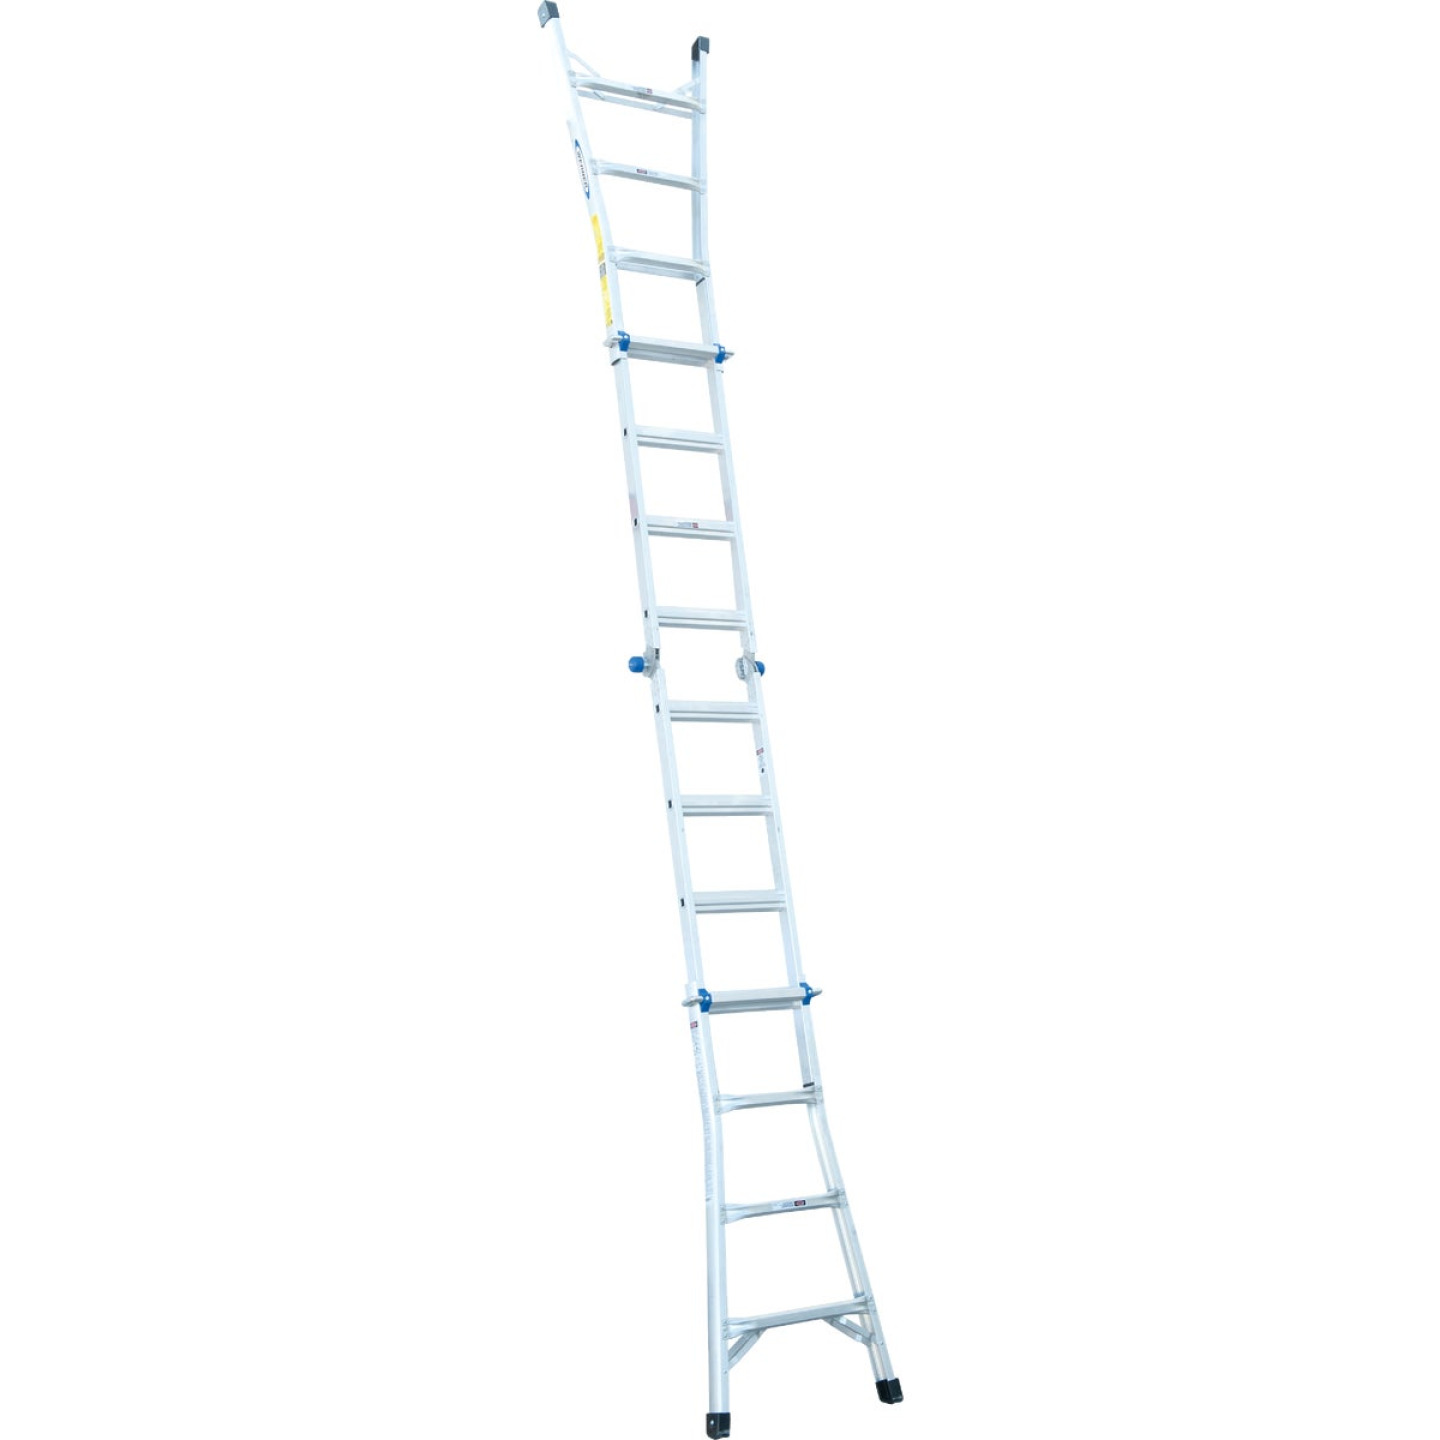 Werner 17 Ft. Aluminum Multi-Position Telescoping Ladder with 300 Lb. Load Capacity Type IA Ladder Rating Image 9